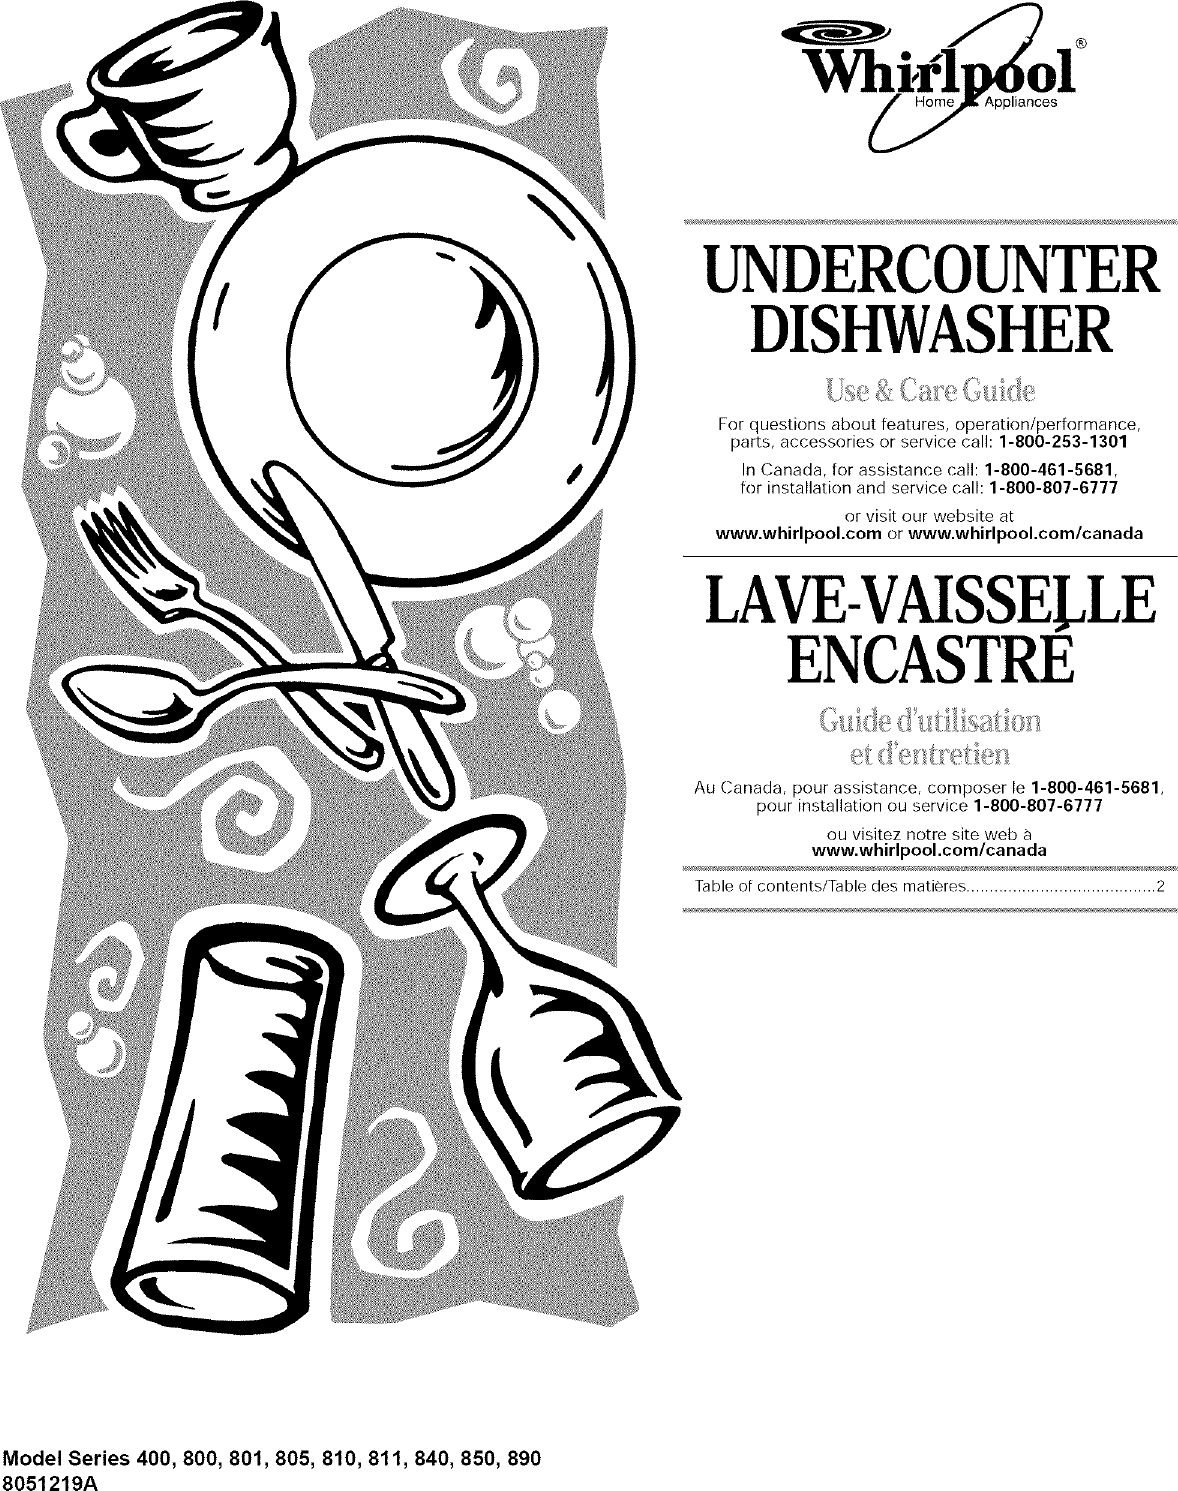 Whirlpool Dishwasher Parts Canada Whirlpool Du805dwgb1 User Manual Undercounter Dishwasher Manuals